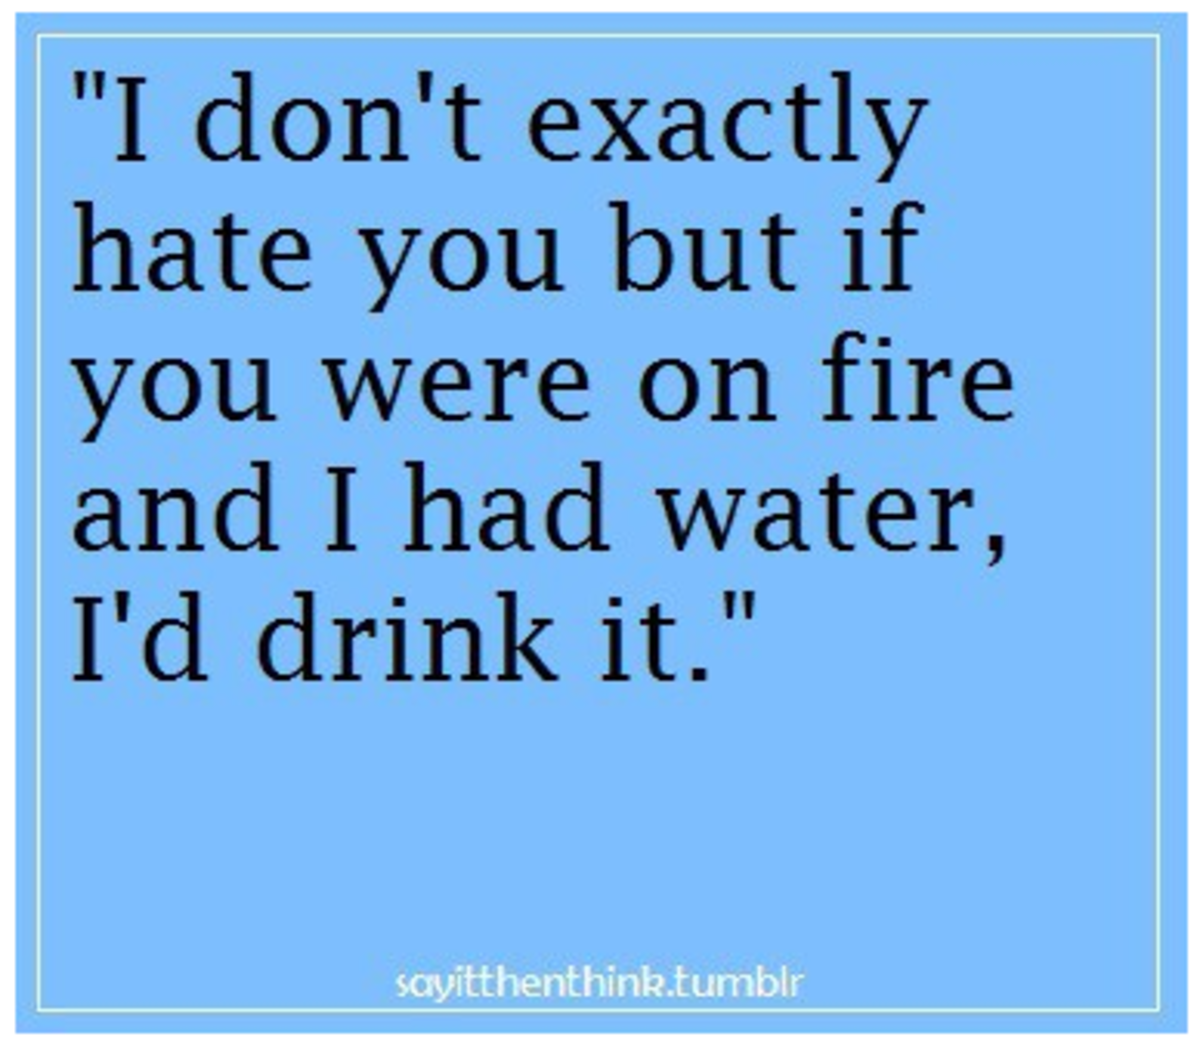 I don't exactly hate you but if you were on fire and I had water I'd drink it